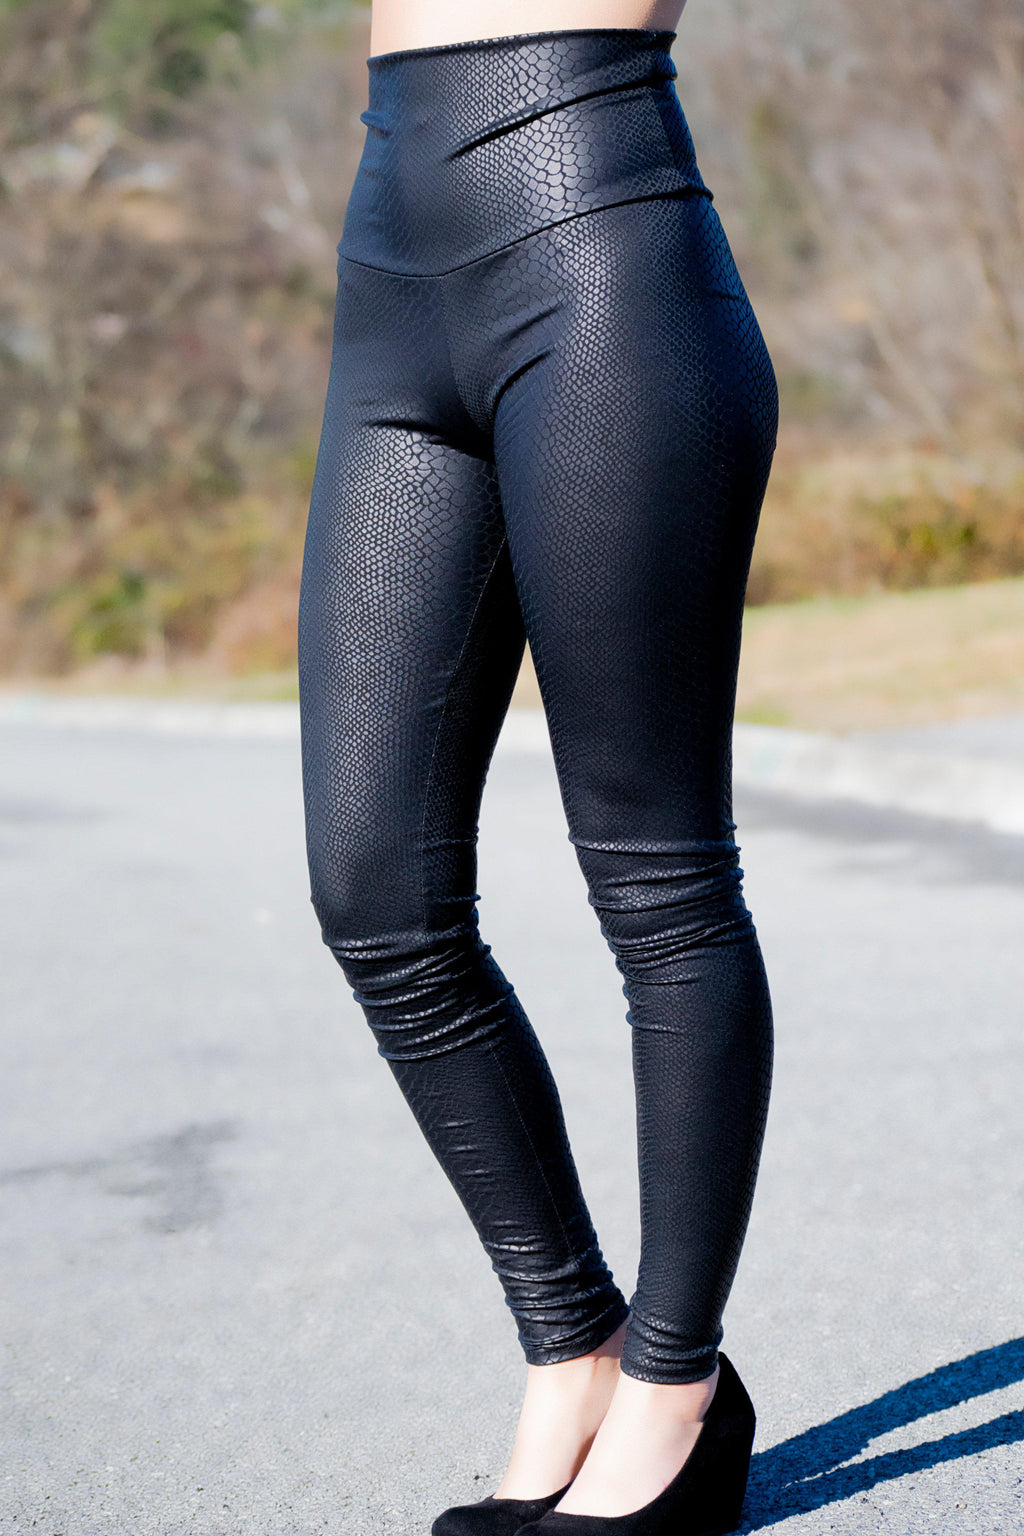 Snakeskin Leggings - 512 Boutique